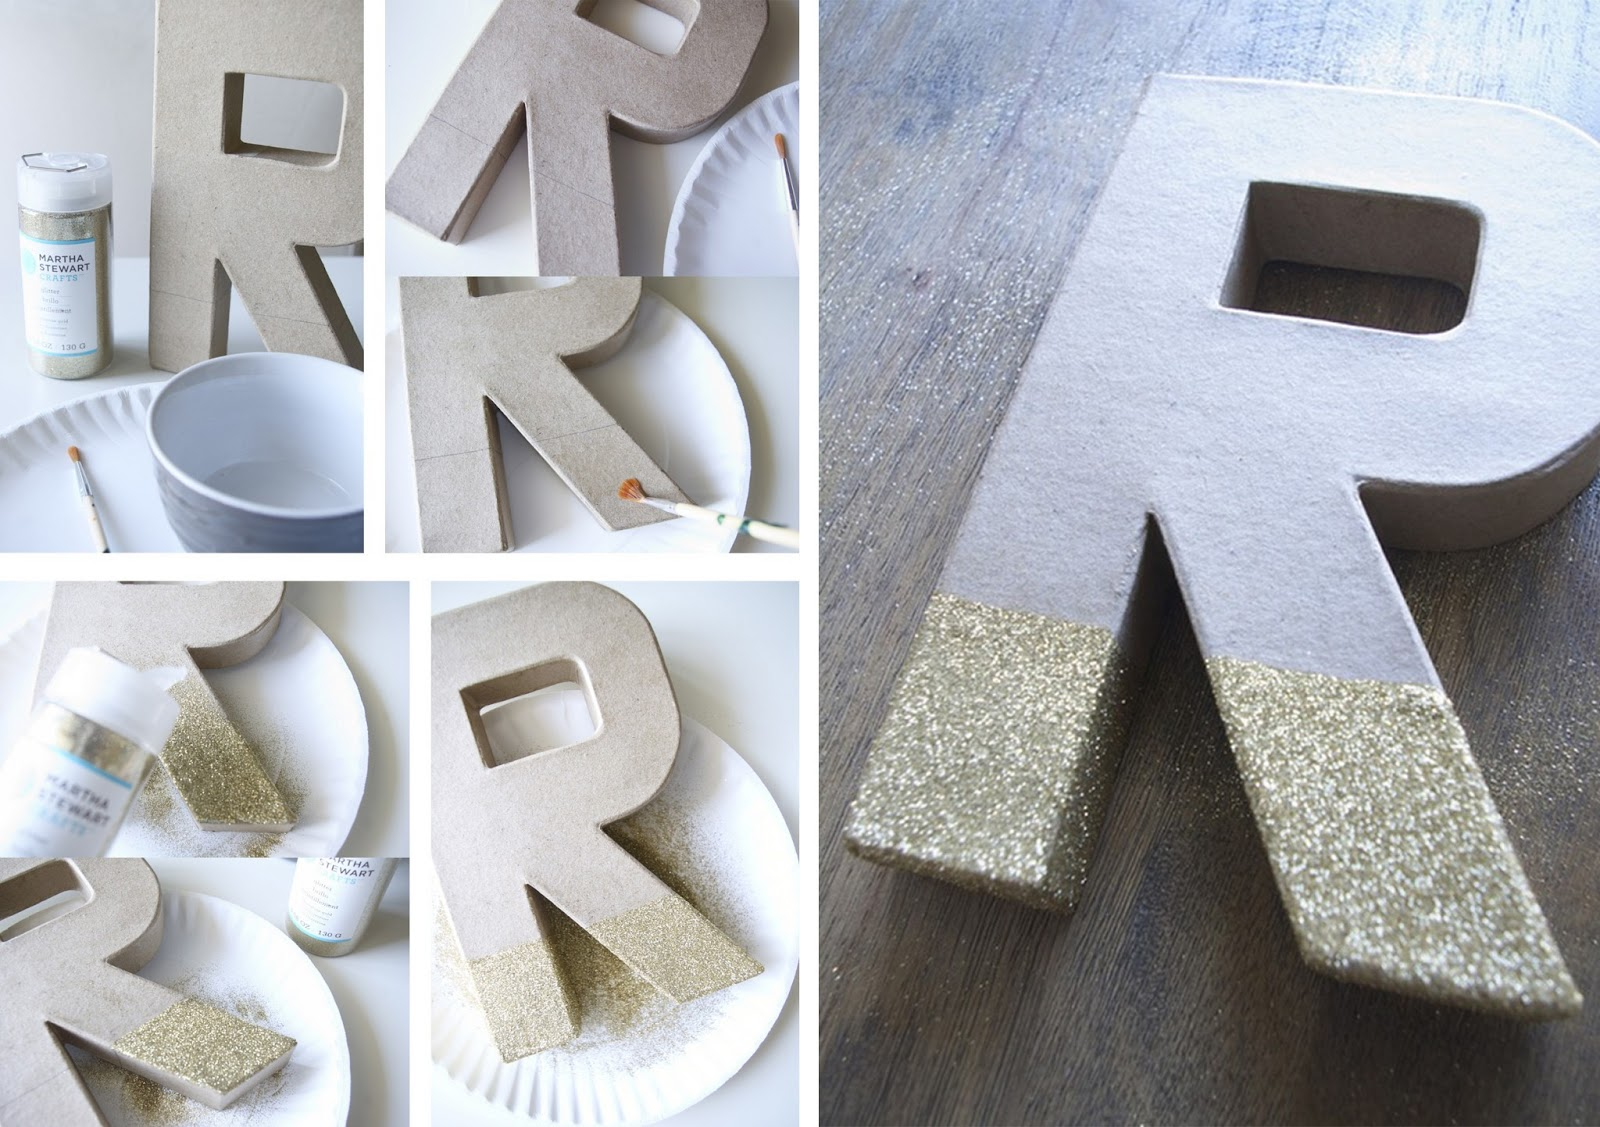 Decoracion Letras Grandes ~ HomePersonalShopper Blog decoraci?n e ideas f?ciles para tu casa